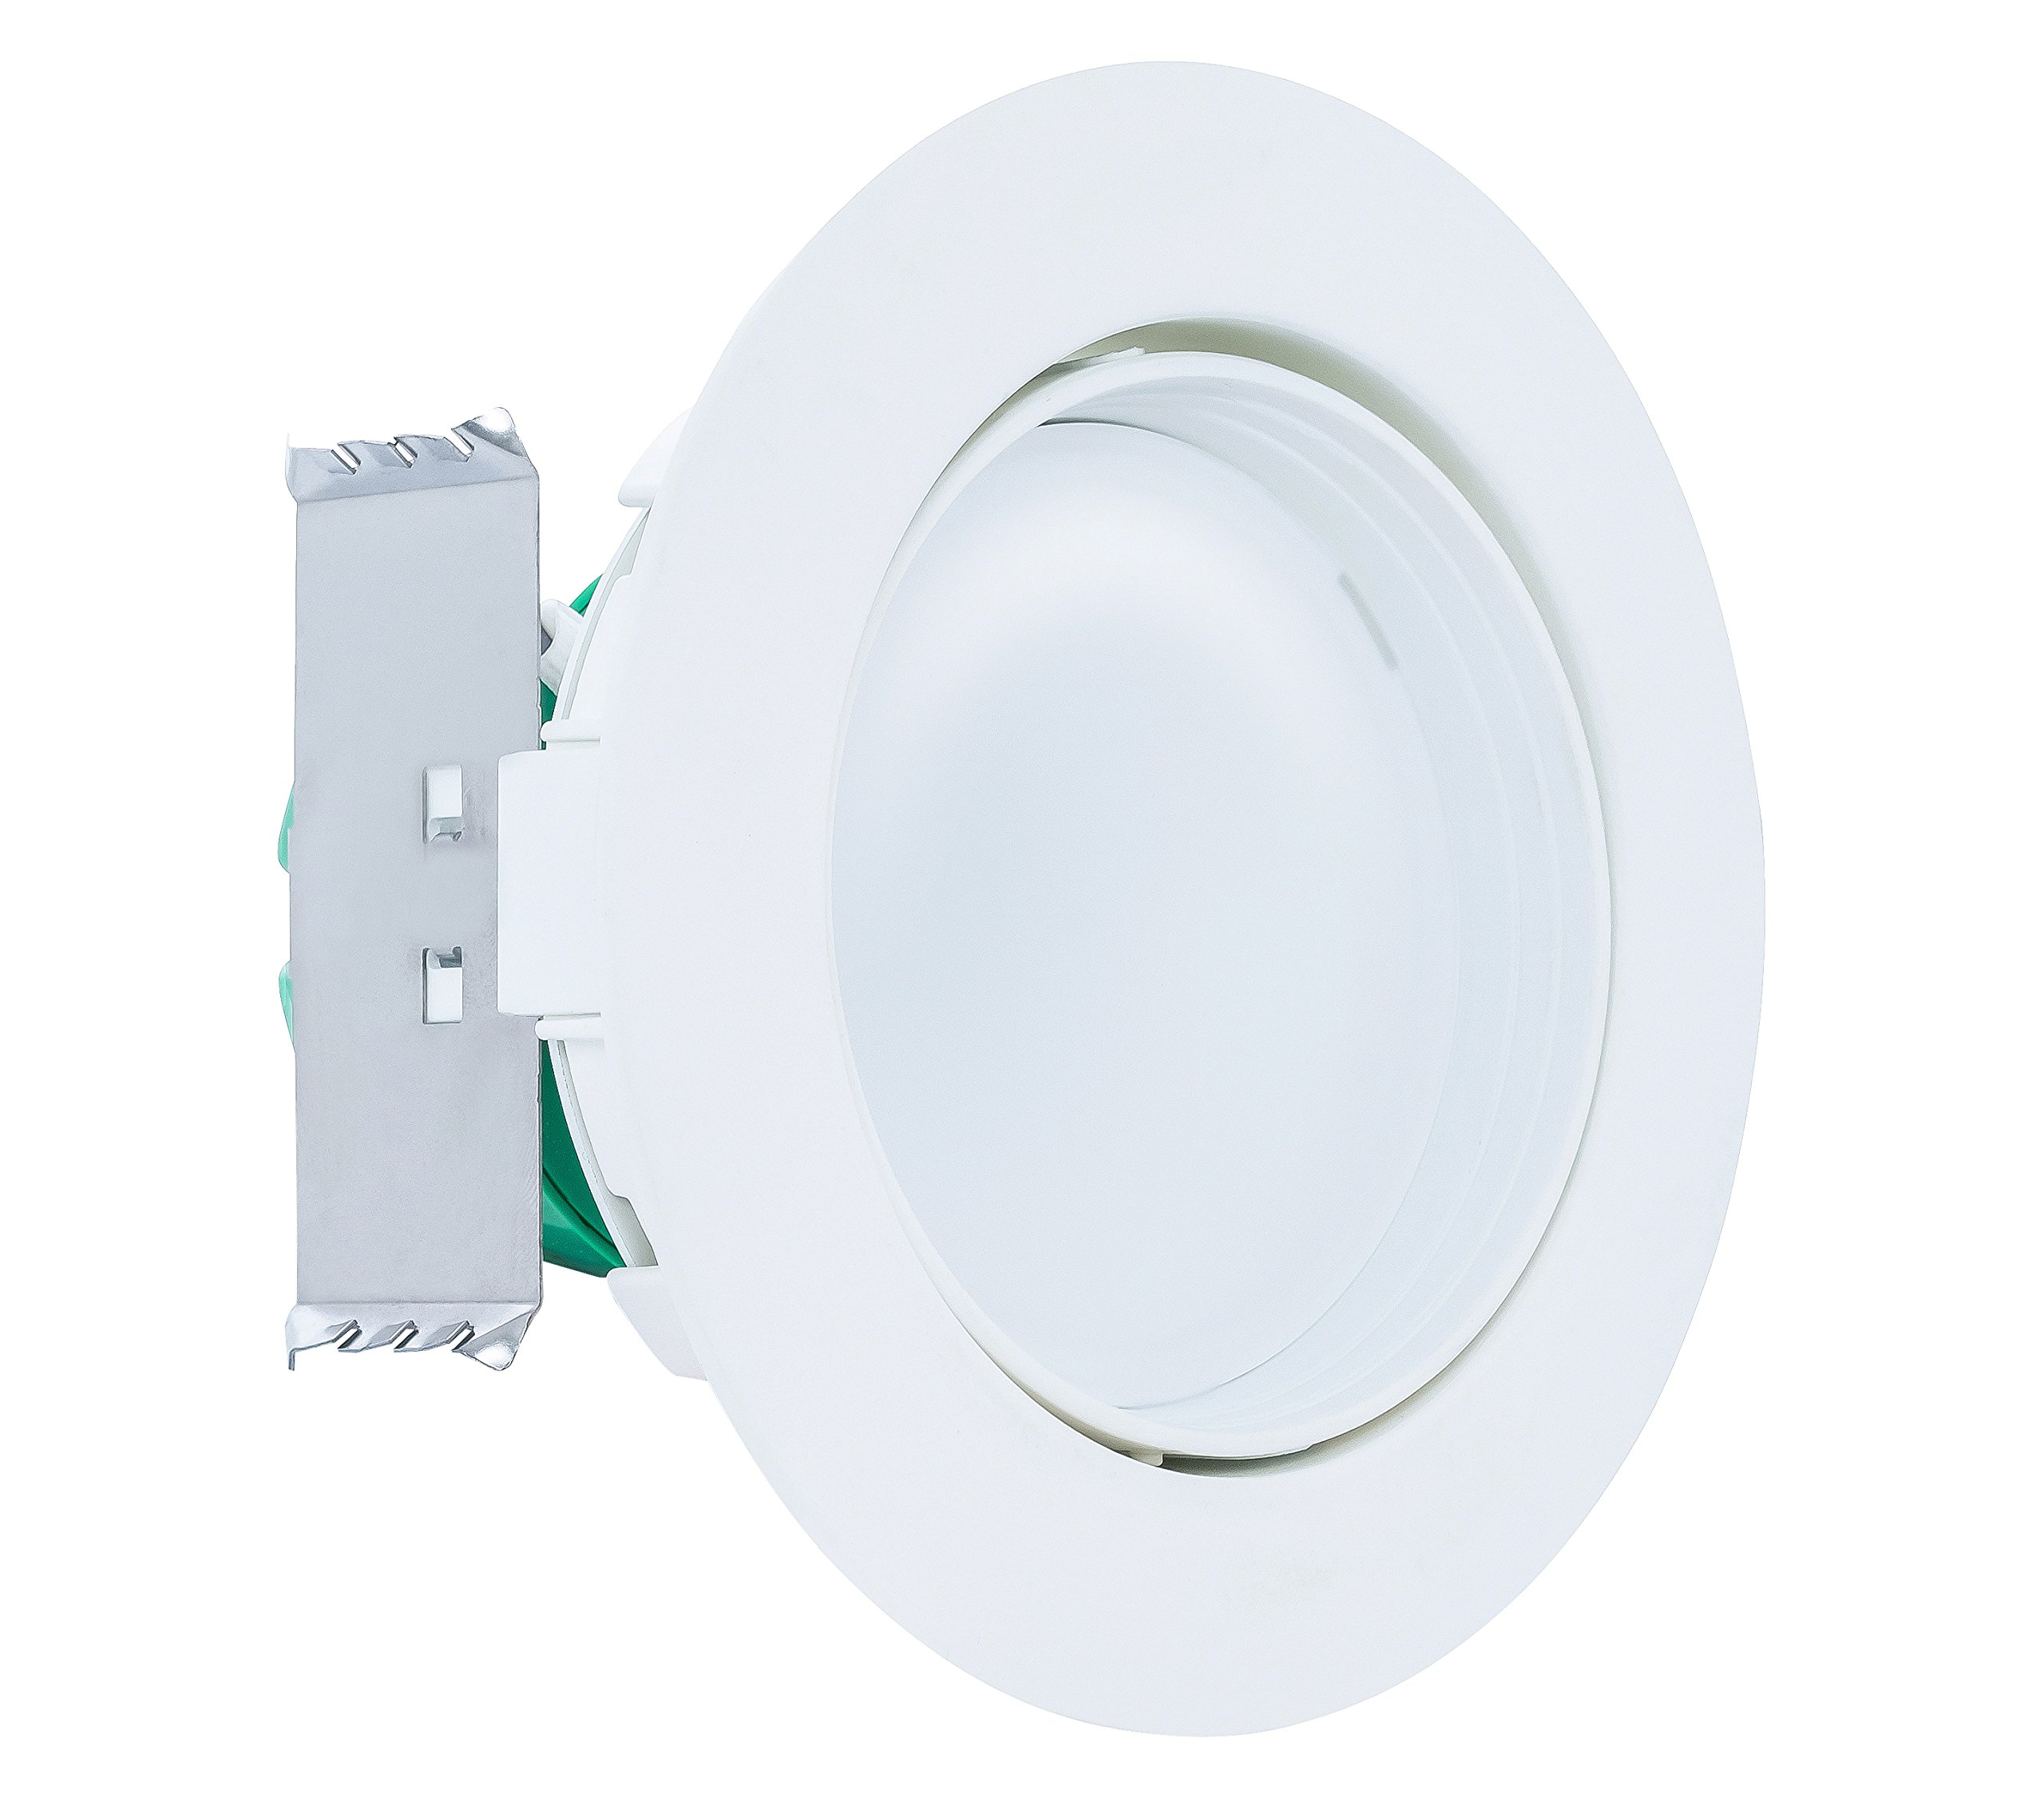 Westgate 10W 4 inch Adjustable LED Retrofit Downlight with Integrated Smooth Trim, Dimmable LED Recessed Light Fixture, Damp Location Rated, 120V Energy Star 5 YR Warranty (4100K Cool White, 1 Pack)